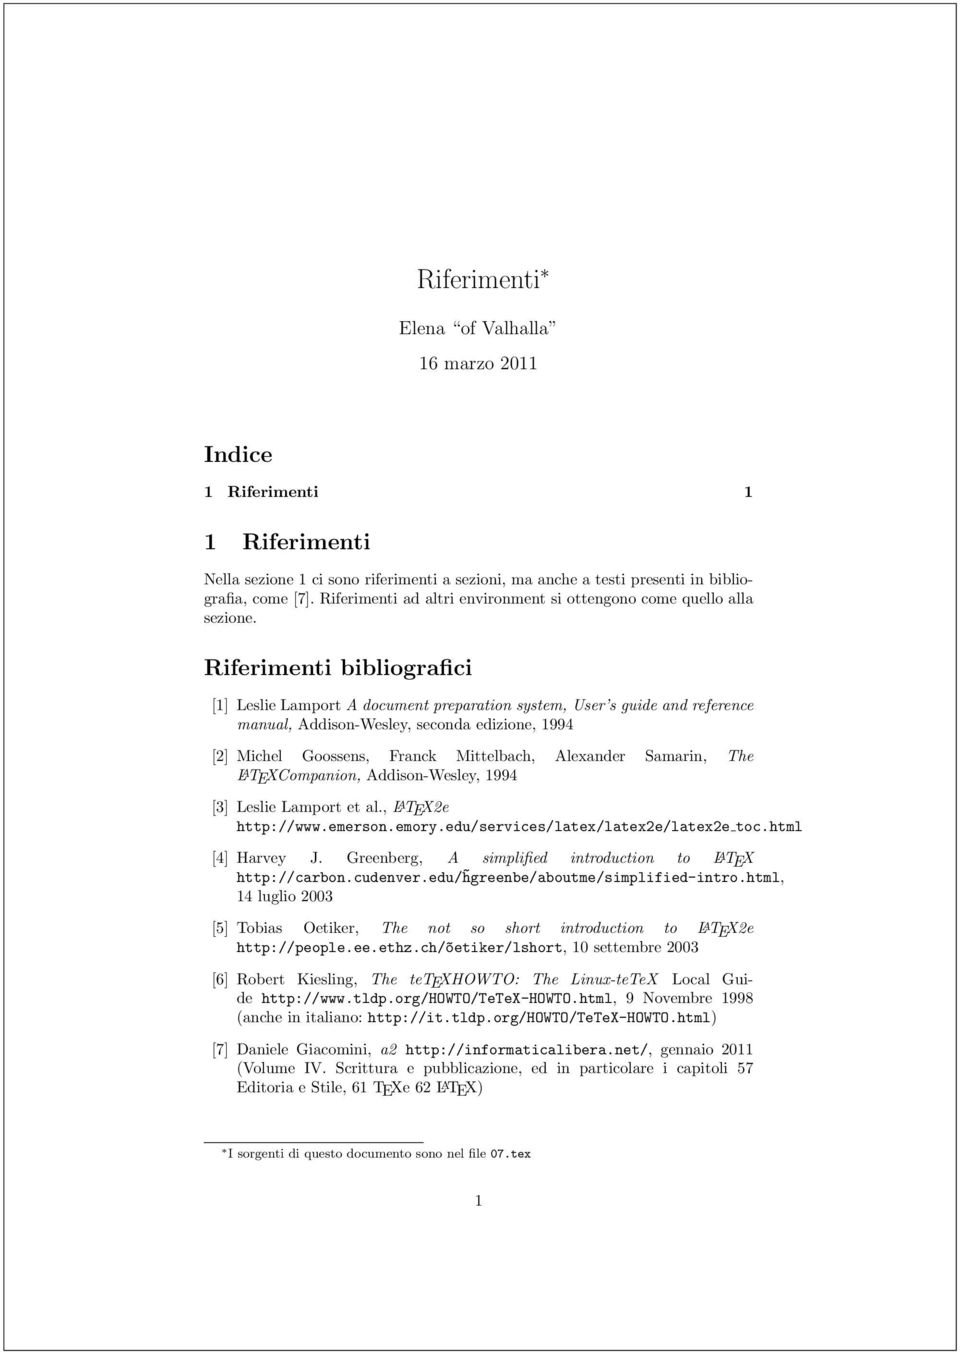 Riferimenti bibliografici [1] Leslie Lamport A document preparation system, User s guide and reference manual, Addison-Wesley, seconda edizione, 1994 [2] Michel Goossens, Franck Mittelbach, Alexander